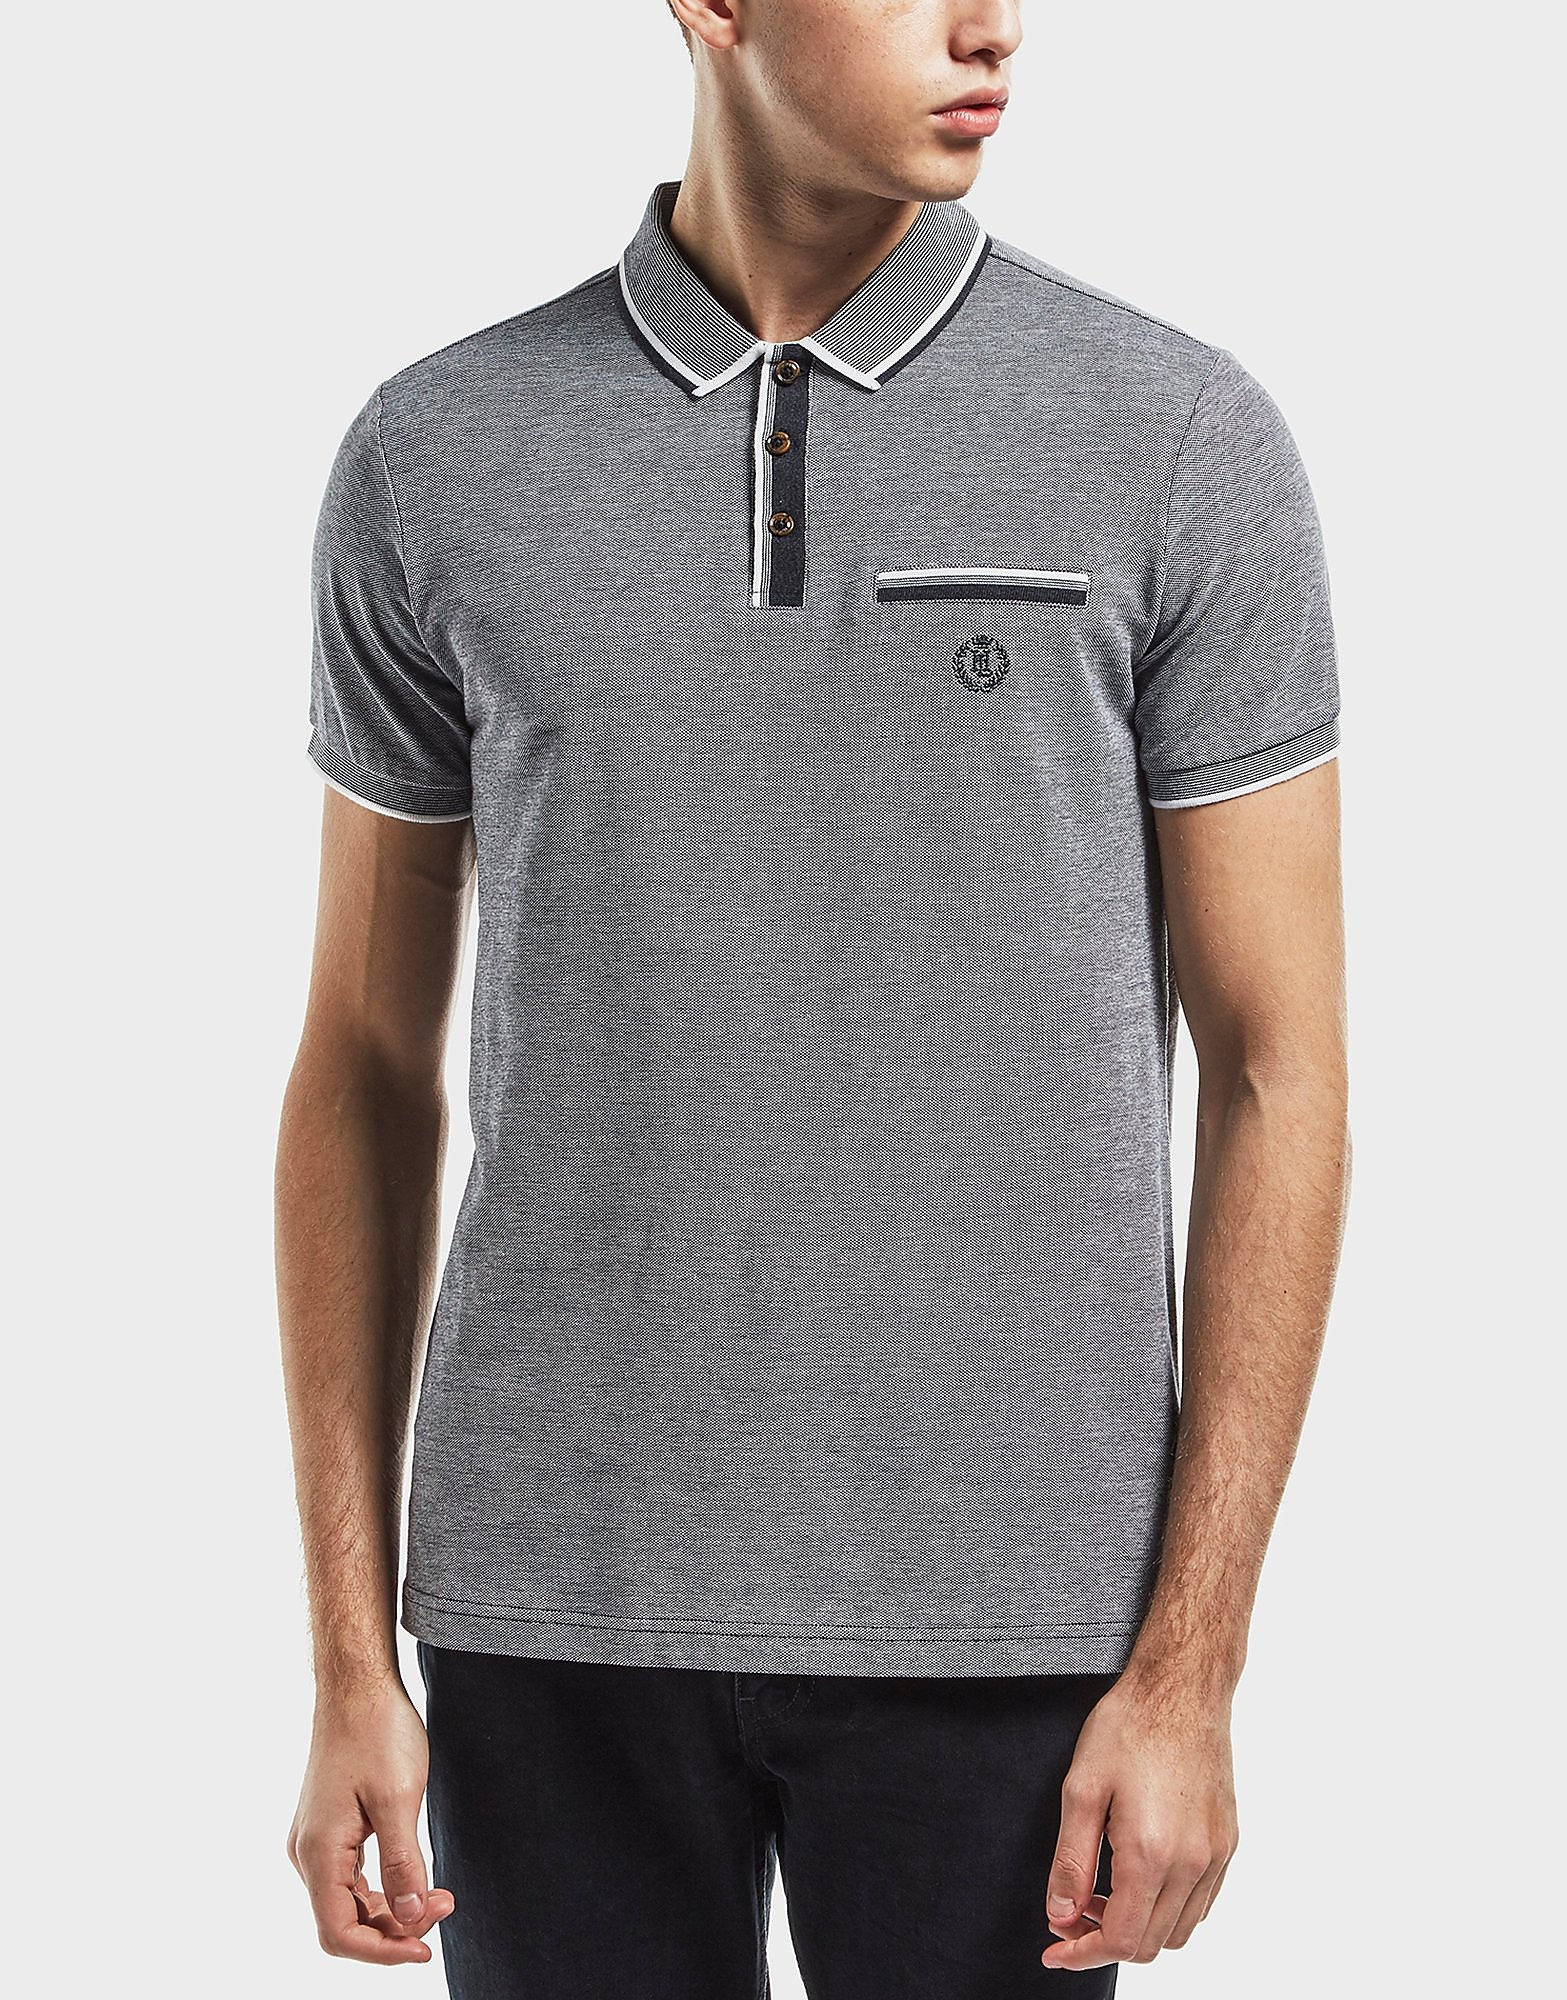 Henri Lloyd Highland Short Sleeve Polo Shirt